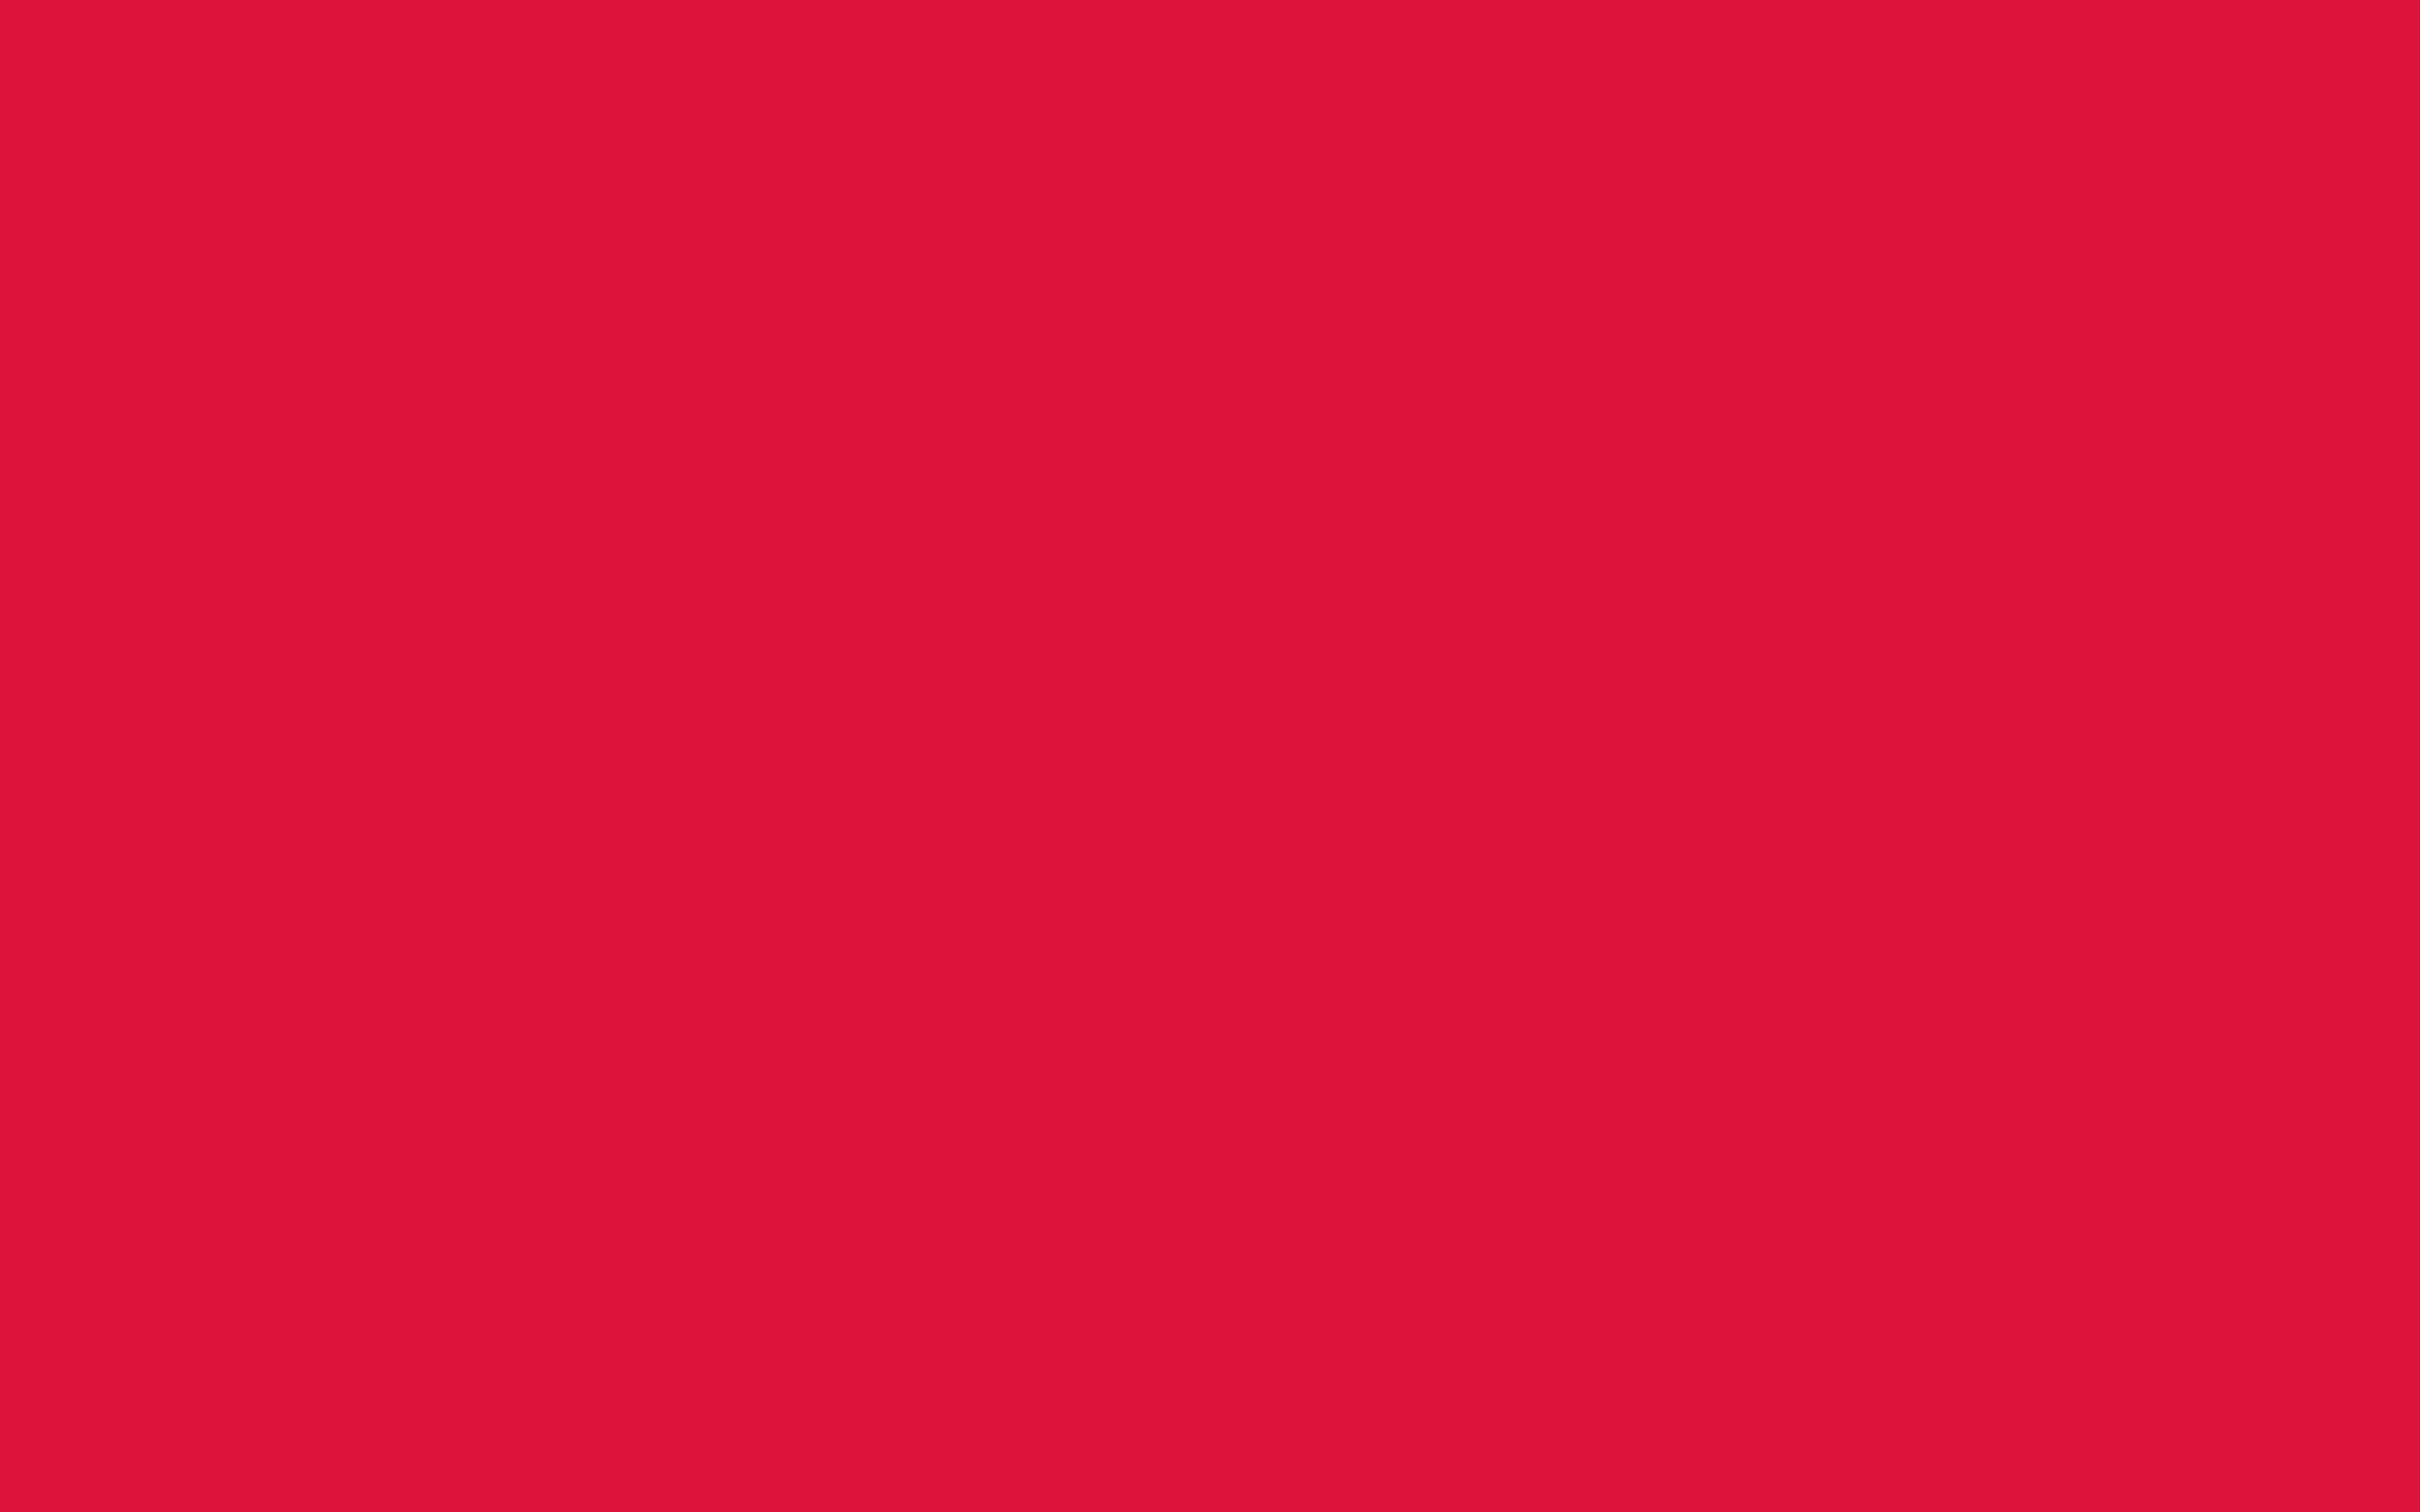 2880x1800 Crimson Solid Color Background